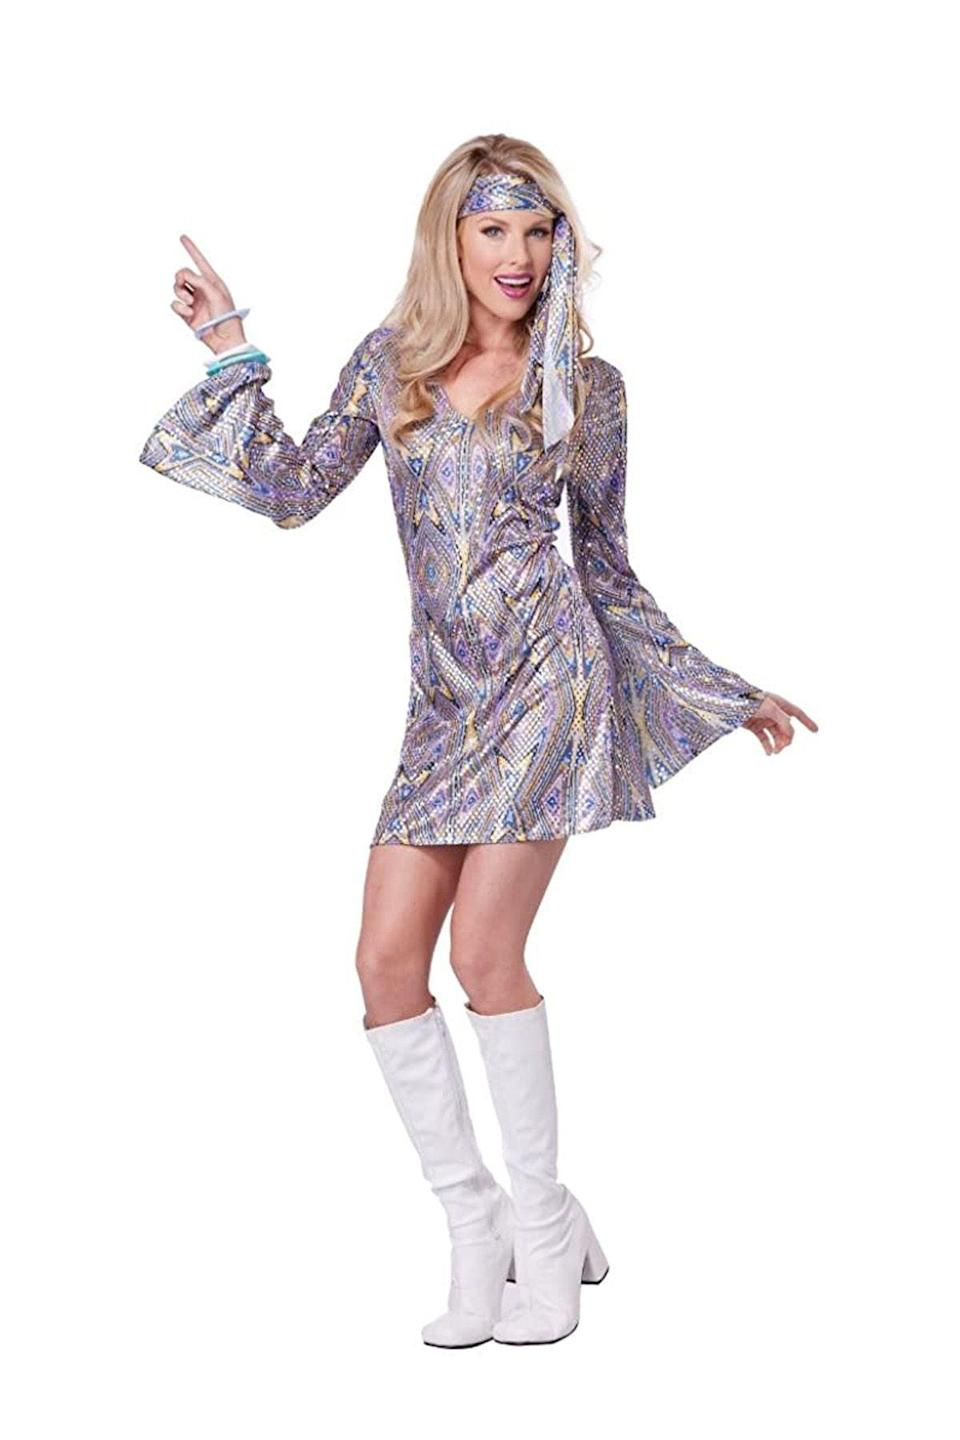 """<p><strong>California Costumes</strong></p><p>amazon.com</p><p><a href=""""http://www.amazon.com/dp/B00R9X97WI?tag=syn-yahoo-20&ascsubtag=%5Bartid%7C10050.g.22500148%5Bsrc%7Cyahoo-us"""" rel=""""nofollow noopener"""" target=""""_blank"""" data-ylk=""""slk:Shop Now"""" class=""""link rapid-noclick-resp"""">Shop Now</a></p><p>Boogie down in a groovy disco costume like this. </p>"""